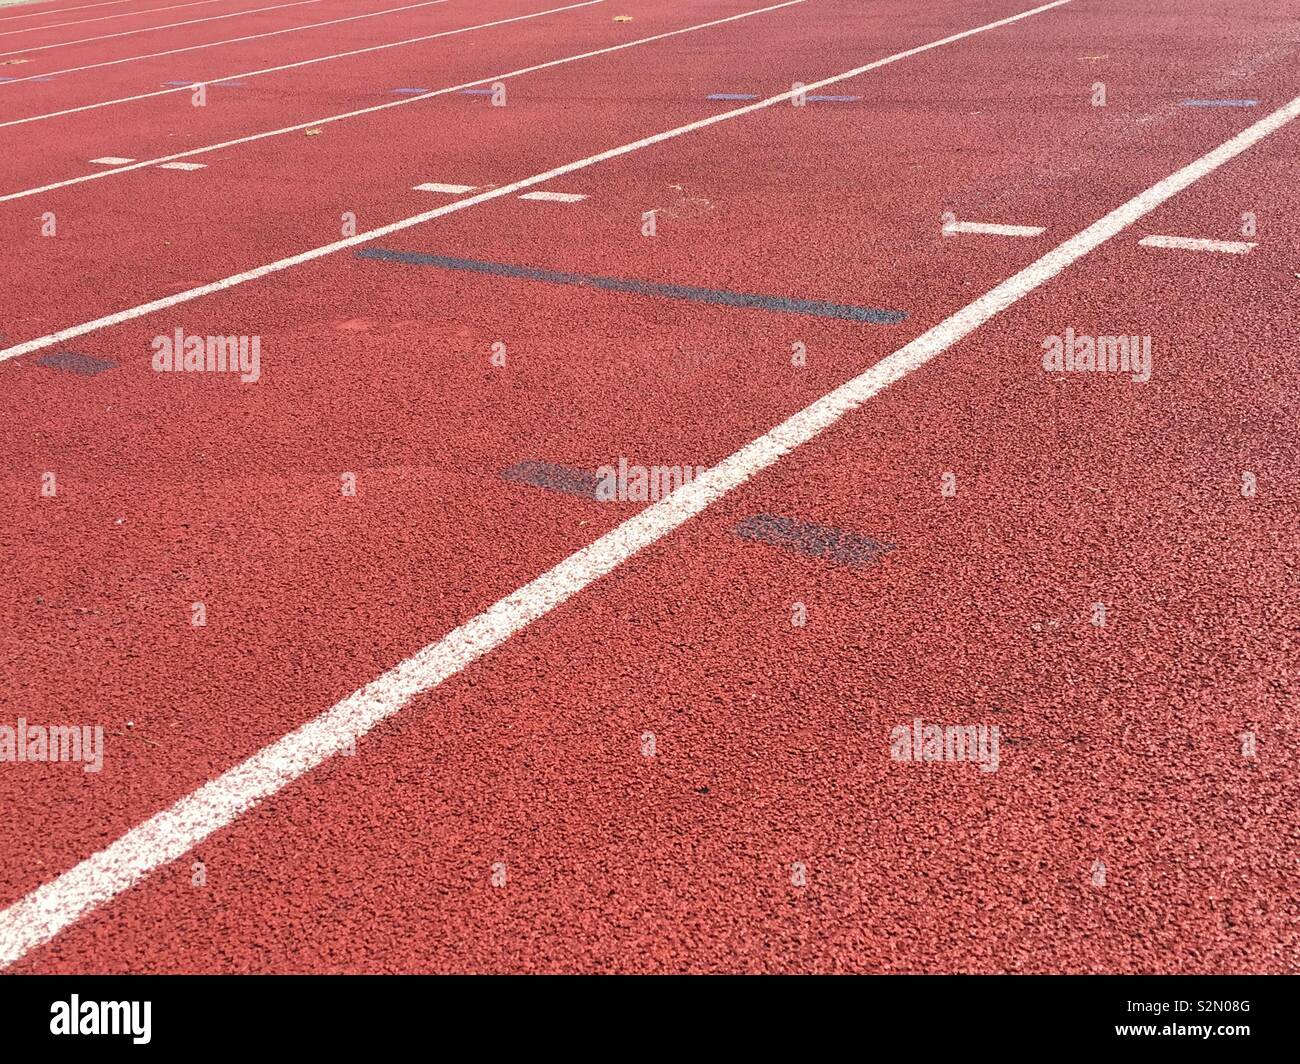 Red athletics track. Sports activities on a running track - Stock Image